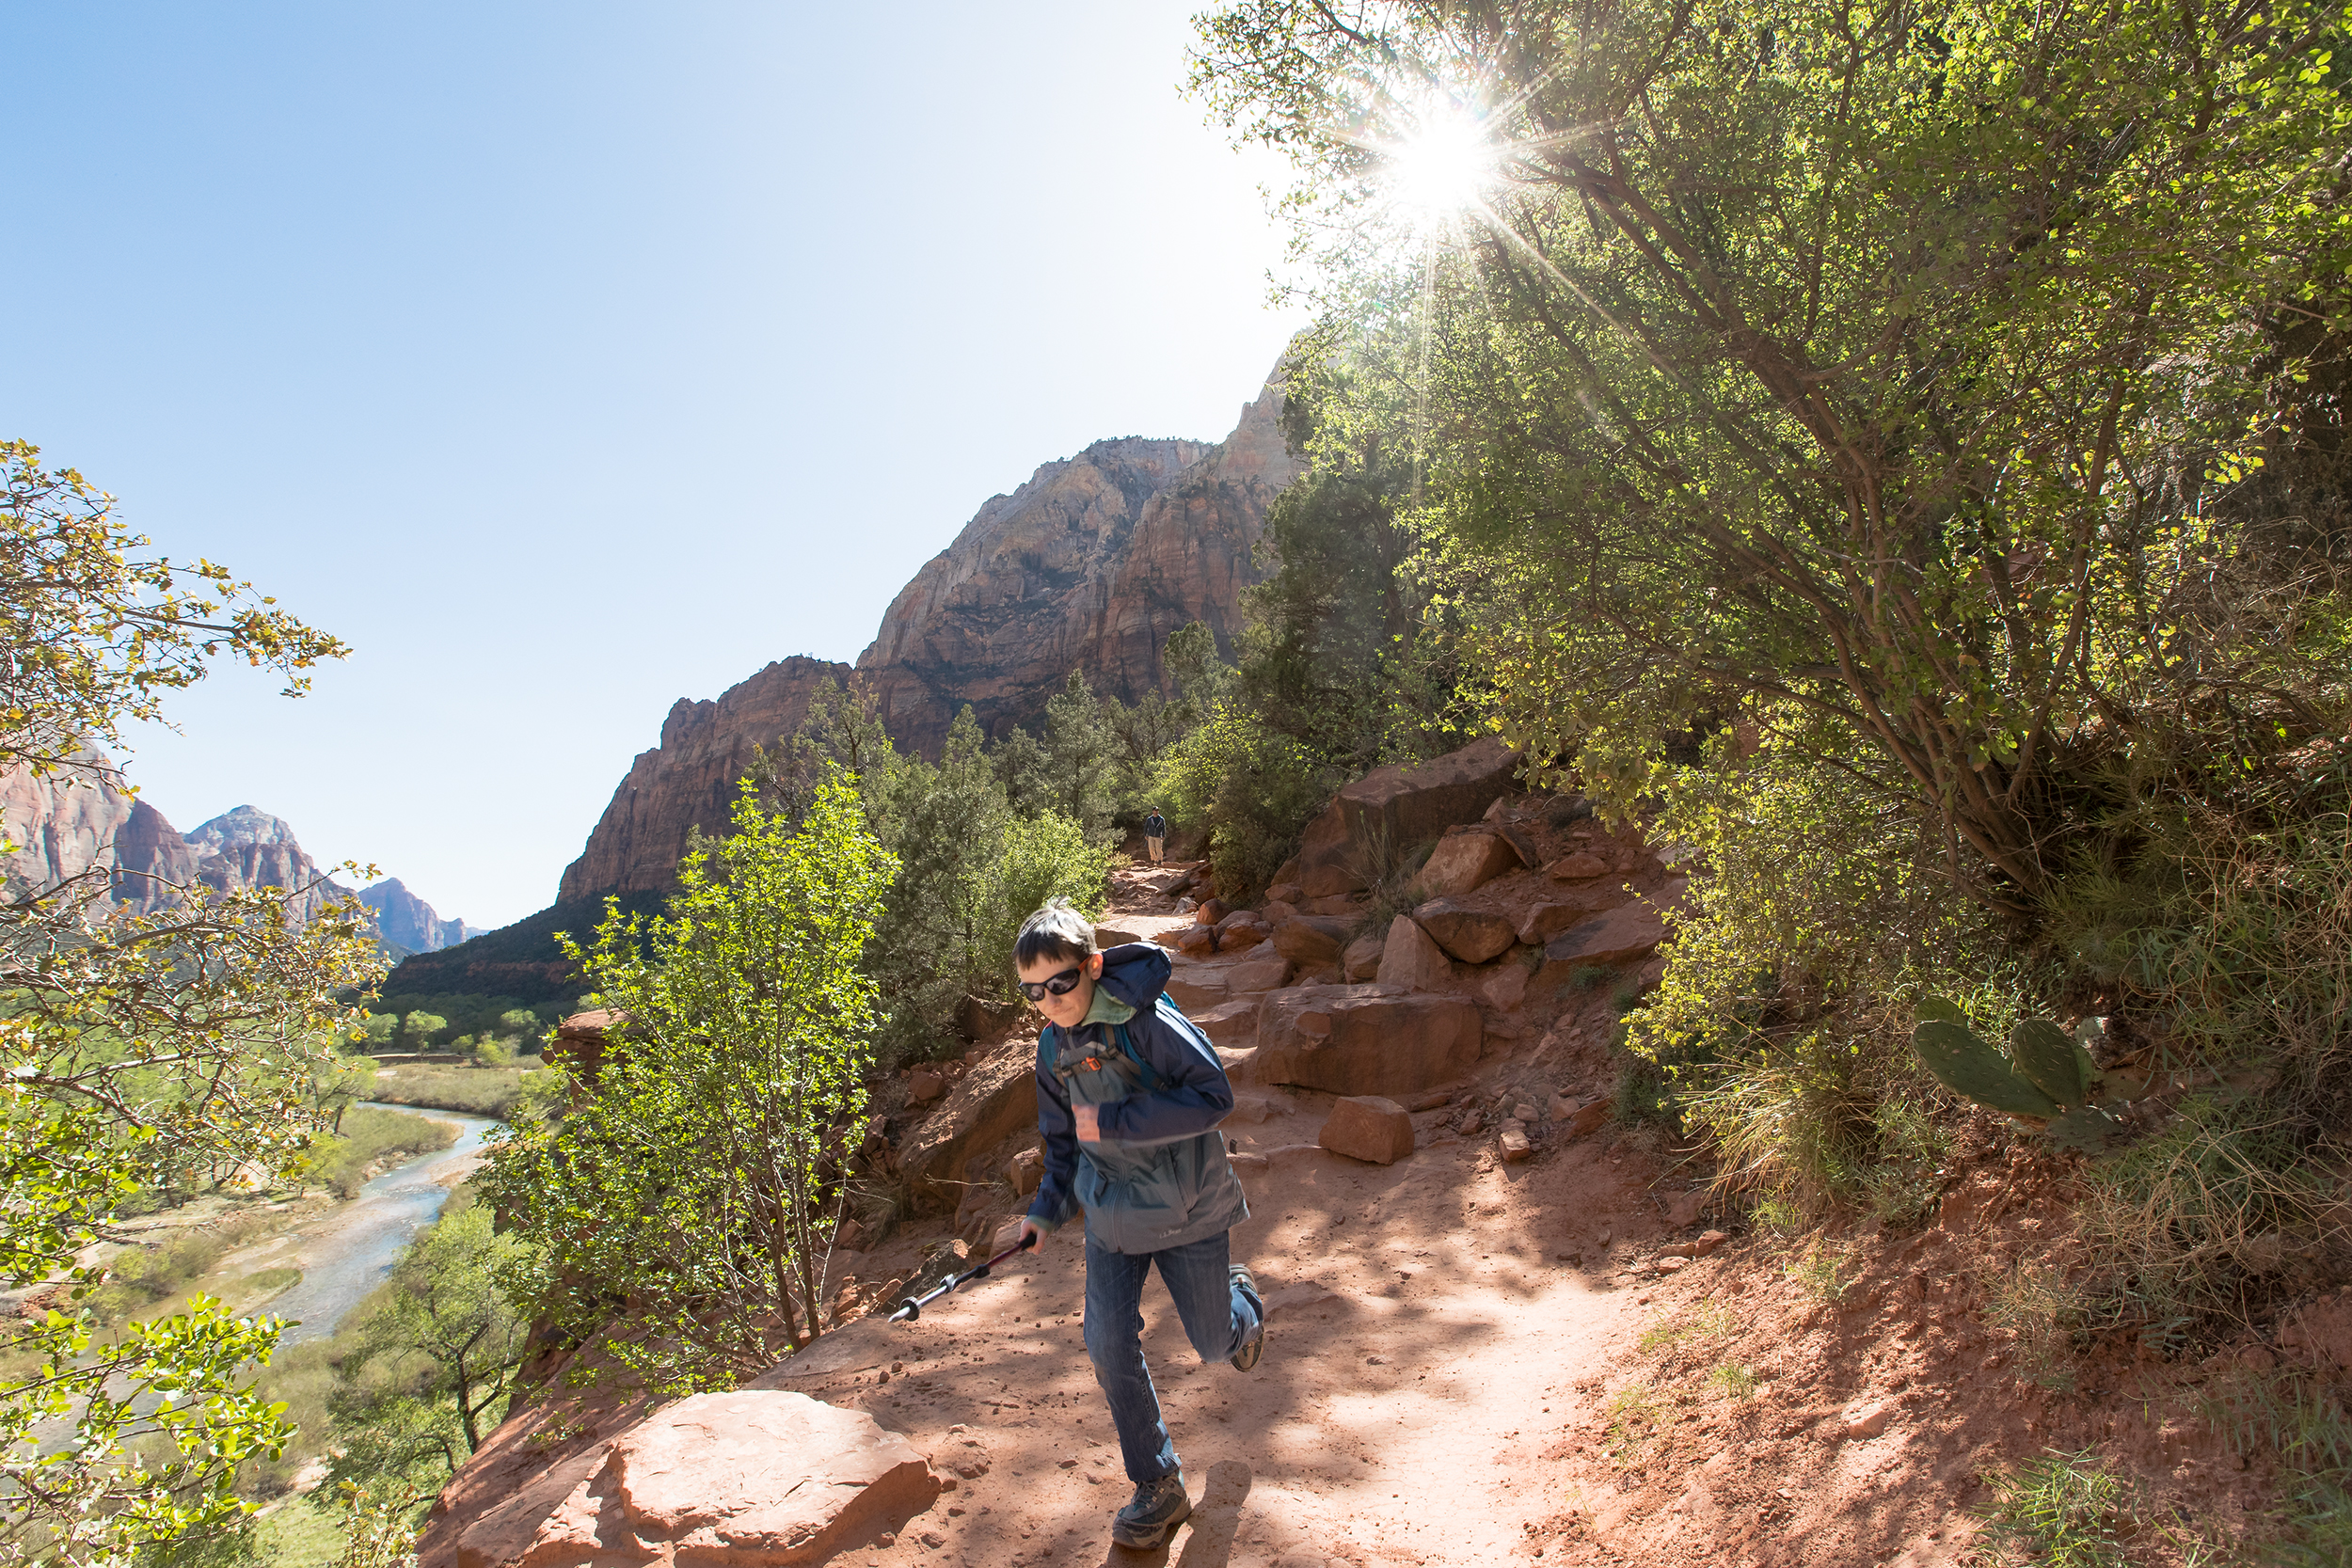 NATLPARKING_travel_rv_adventure_hike_zionnationalpark_0315_WB